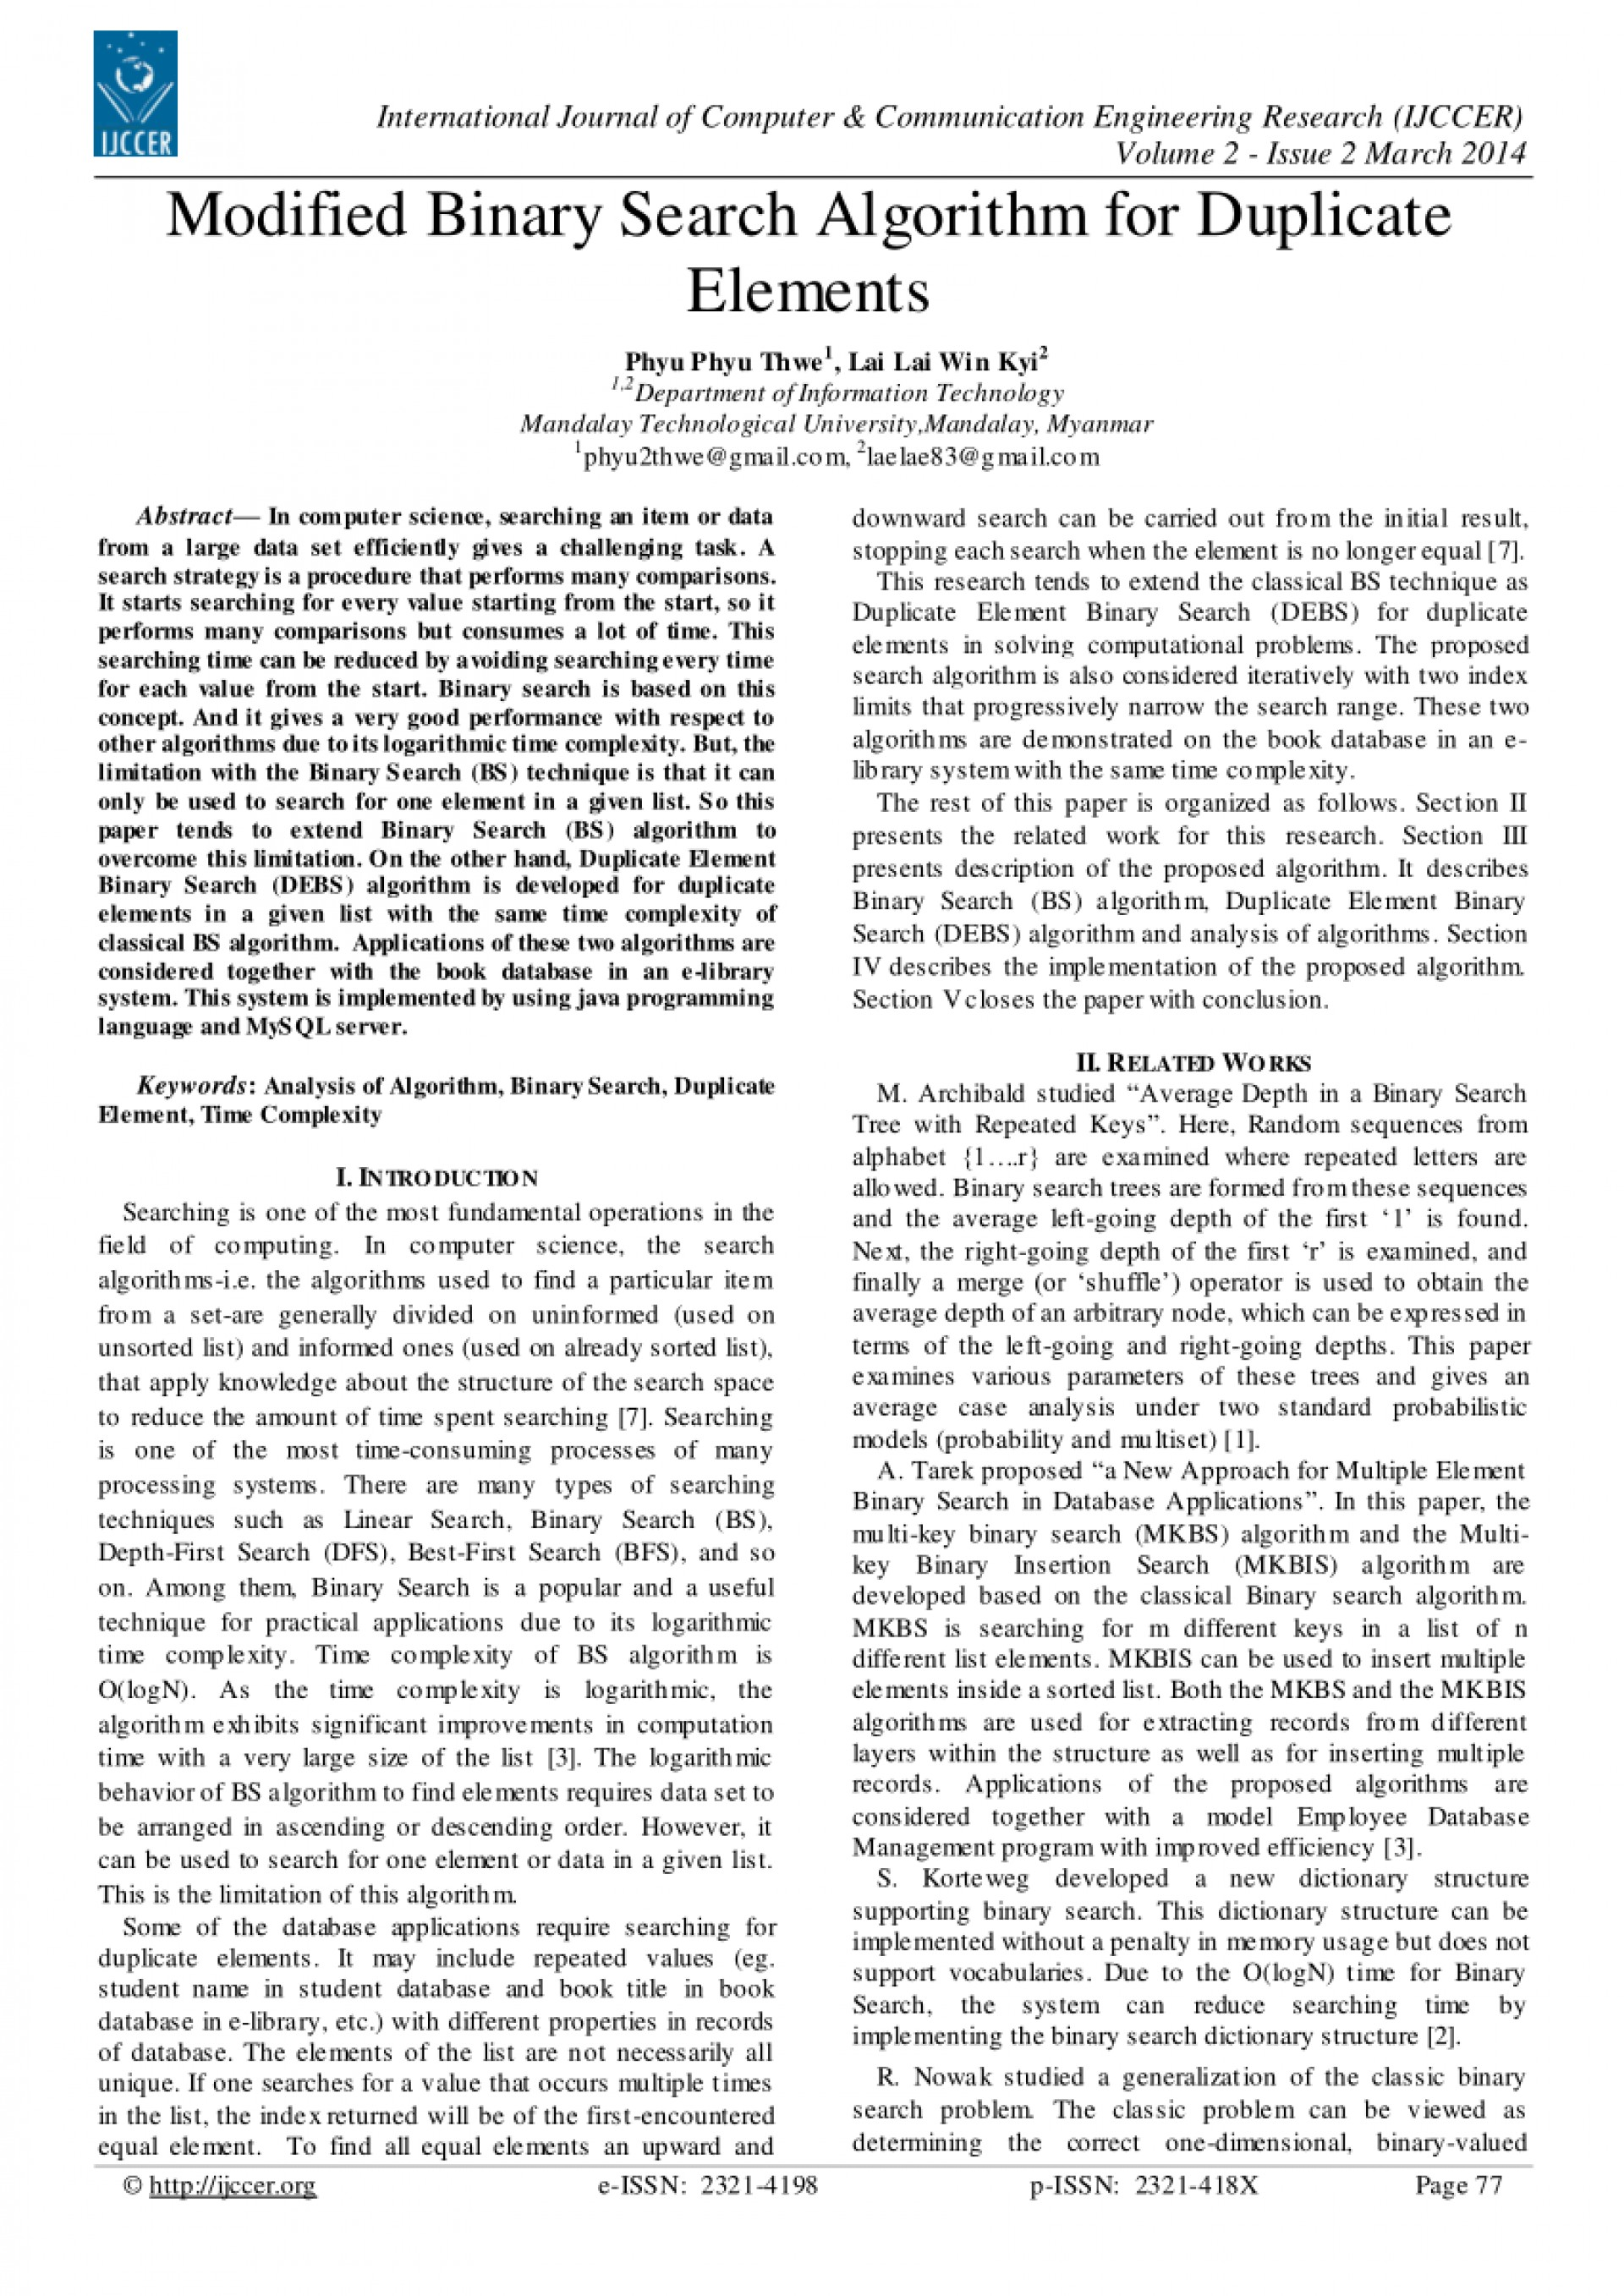 004 Research Paper Largepreview Binary Search Algorithm Frightening Papers 1920